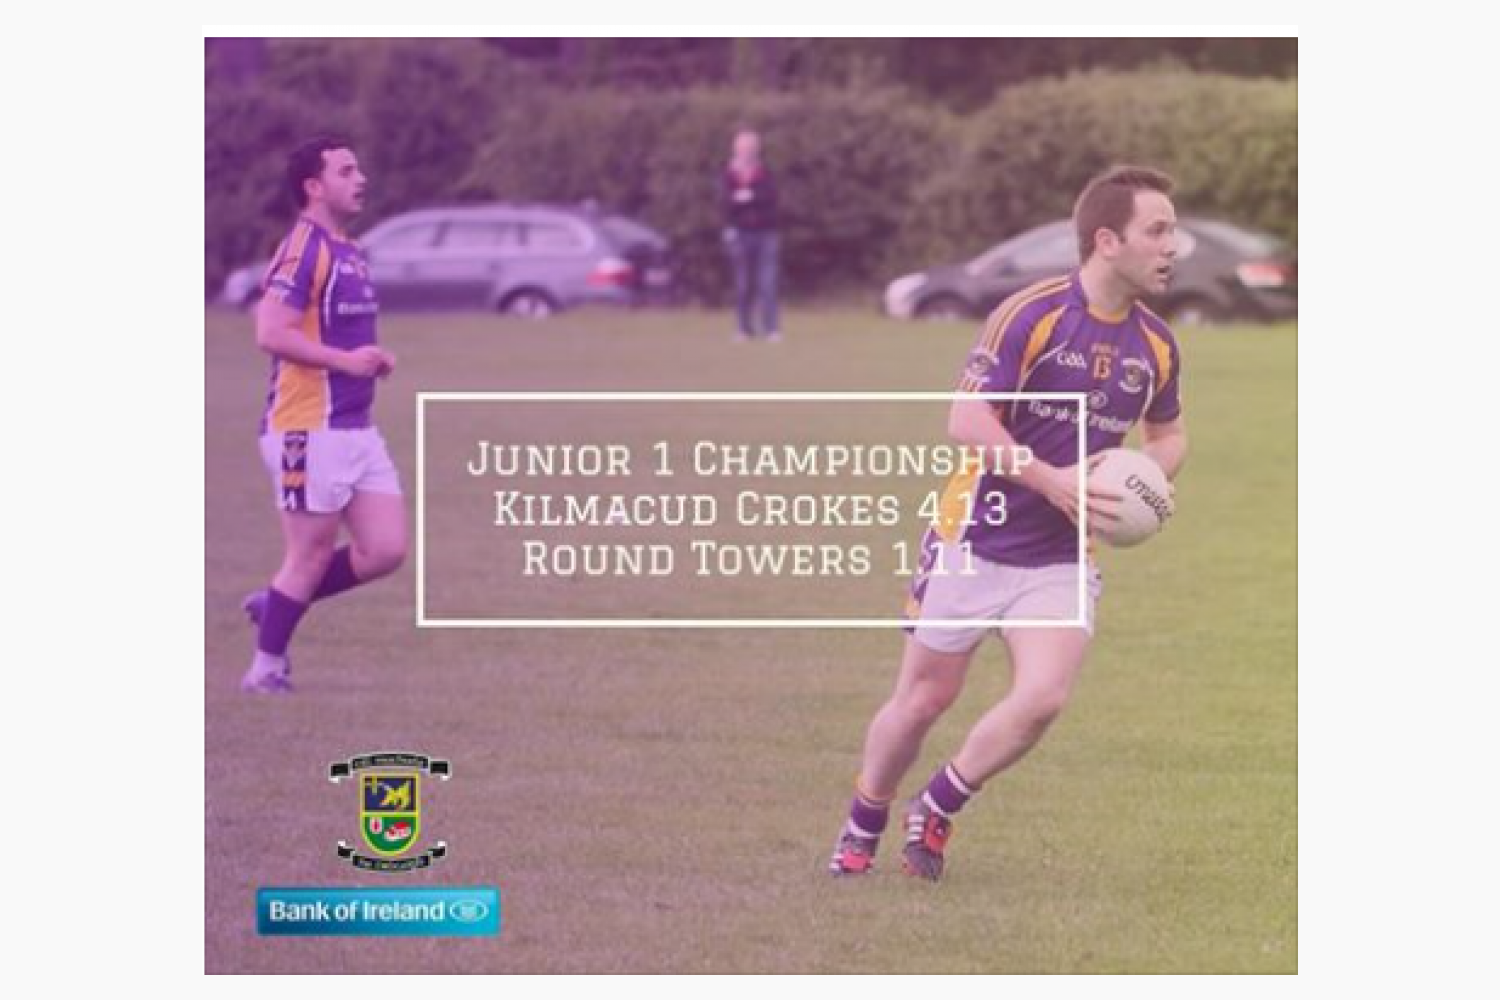 Another Great Weekend for Crokes Adult Football - Intermediate Fball Win coupled with All Junior Team's Winning 2nd riund Group Chmp games